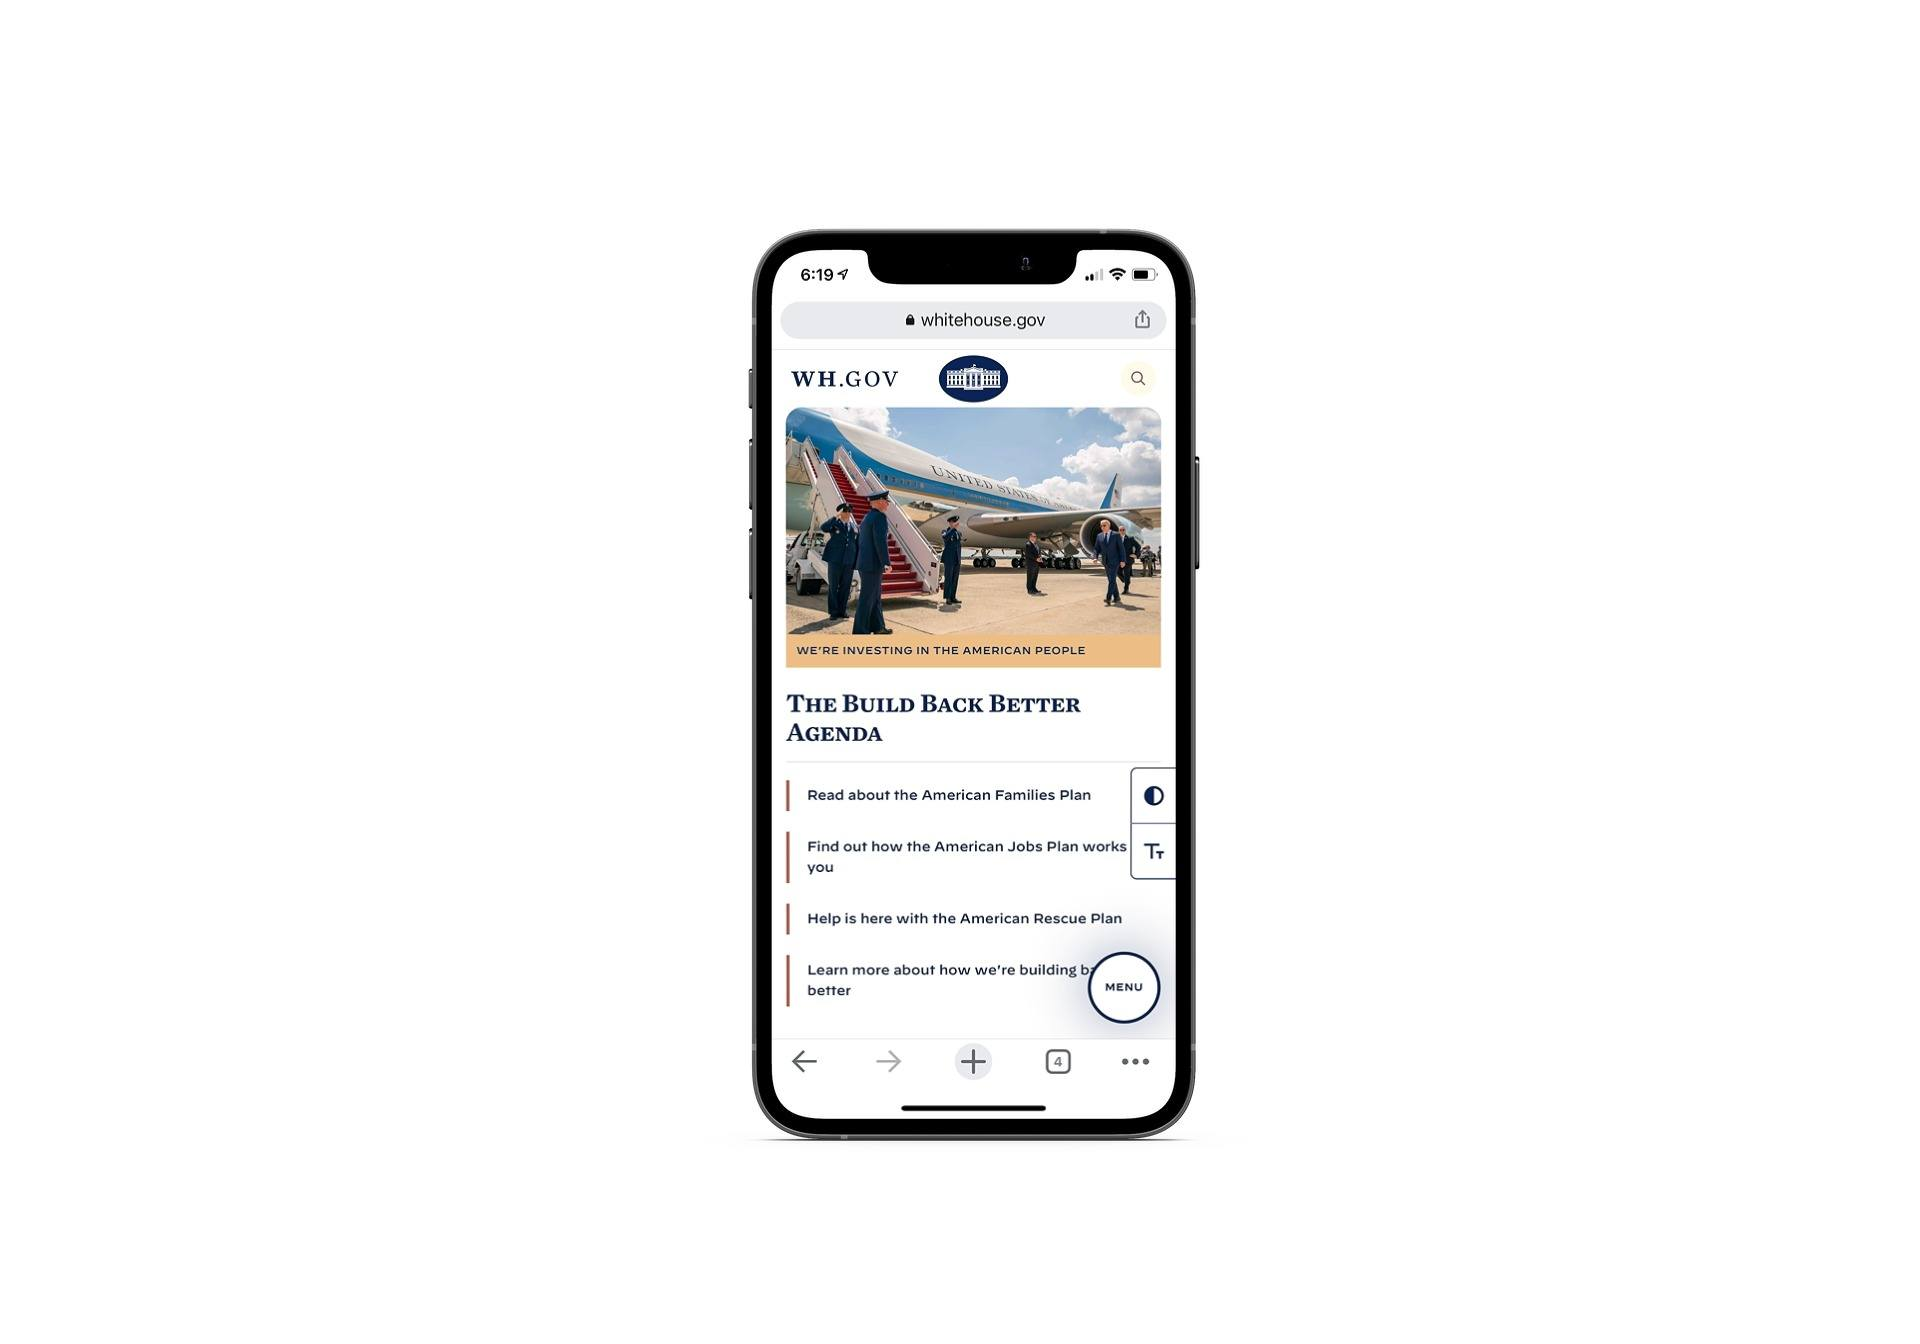 This is the mobile website for the White House.